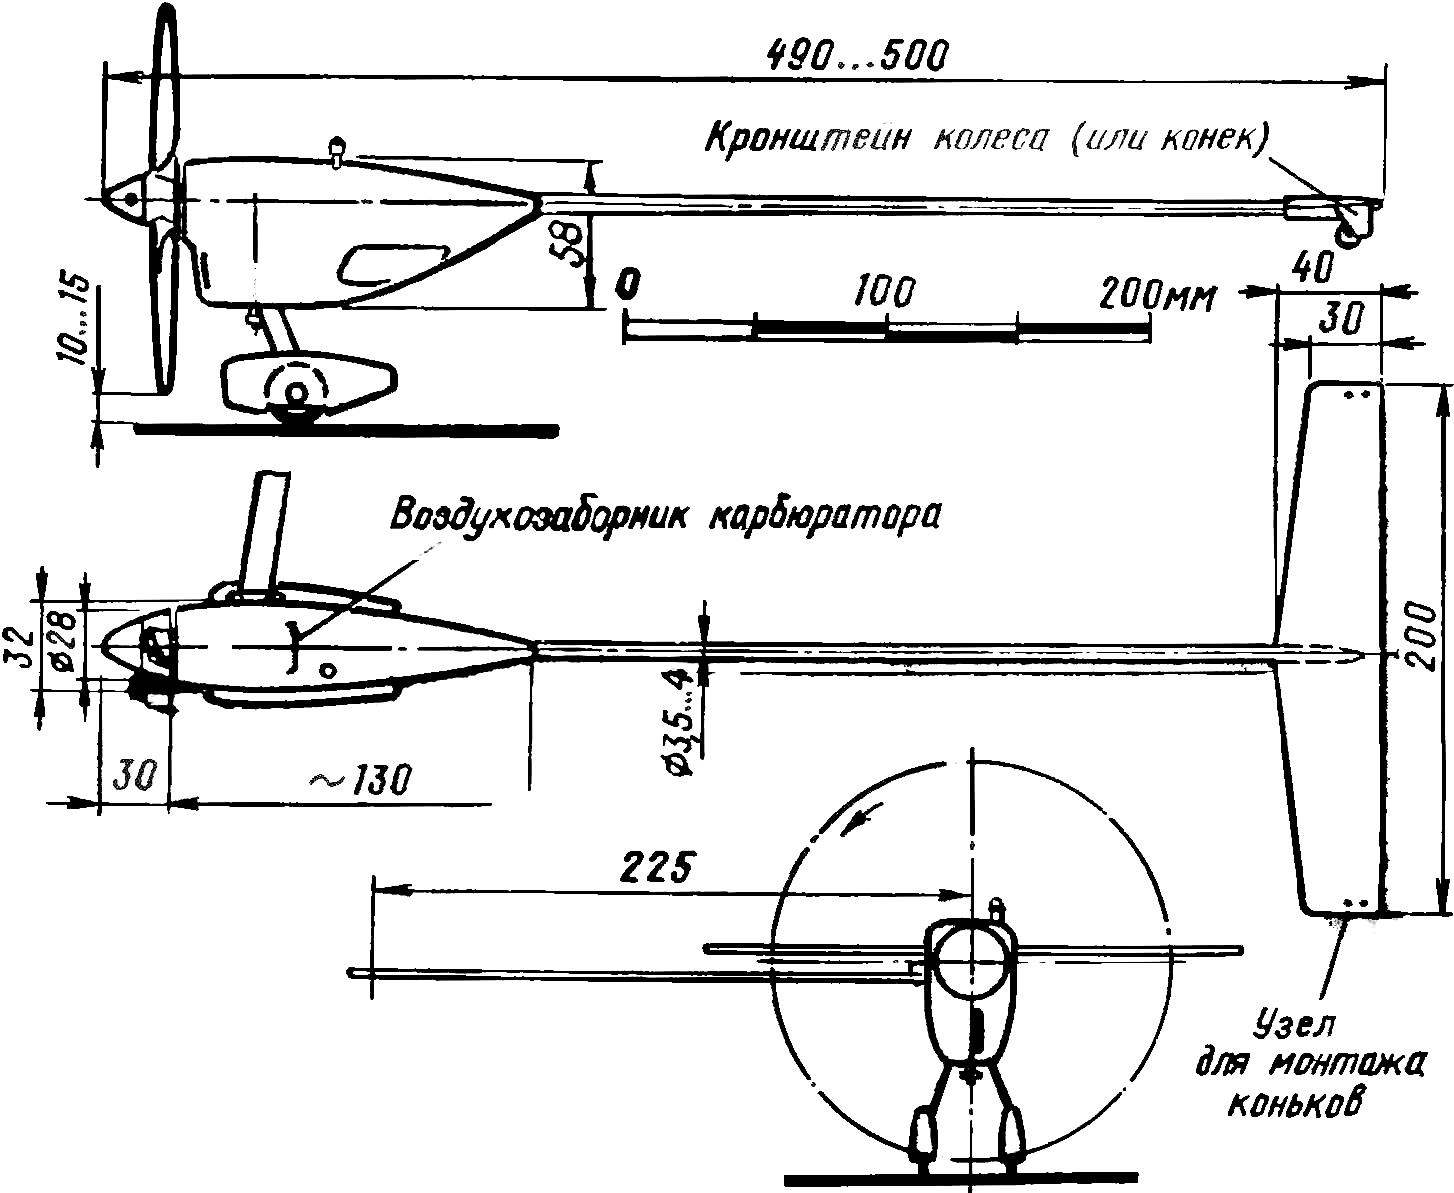 Fig. 1. Racing control line model flying car with the engine working volume of 1.5 cm3.